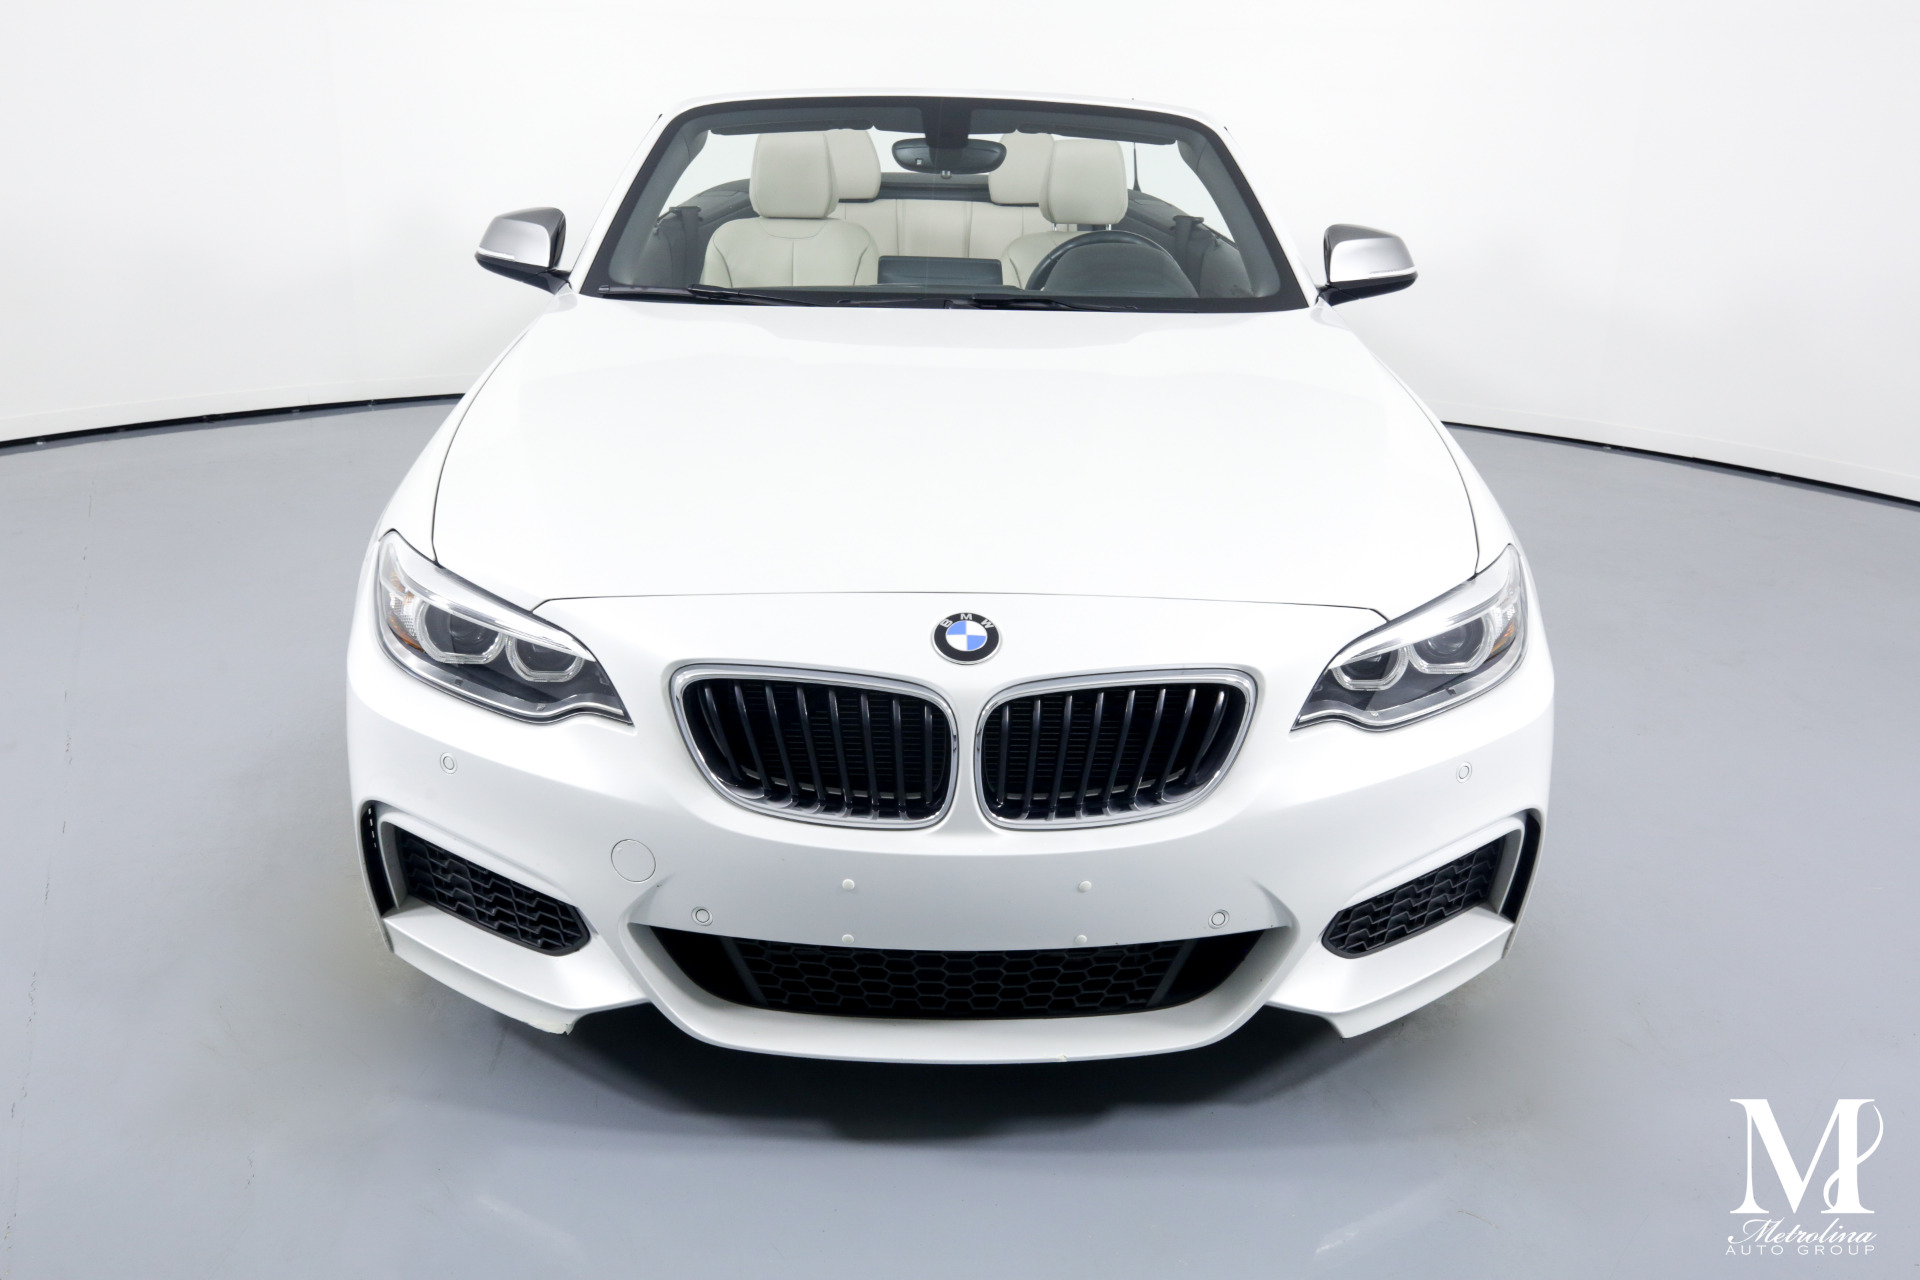 Used 2015 BMW 2 Series M235i for sale $32,996 at Metrolina Auto Group in Charlotte NC 28217 - 4